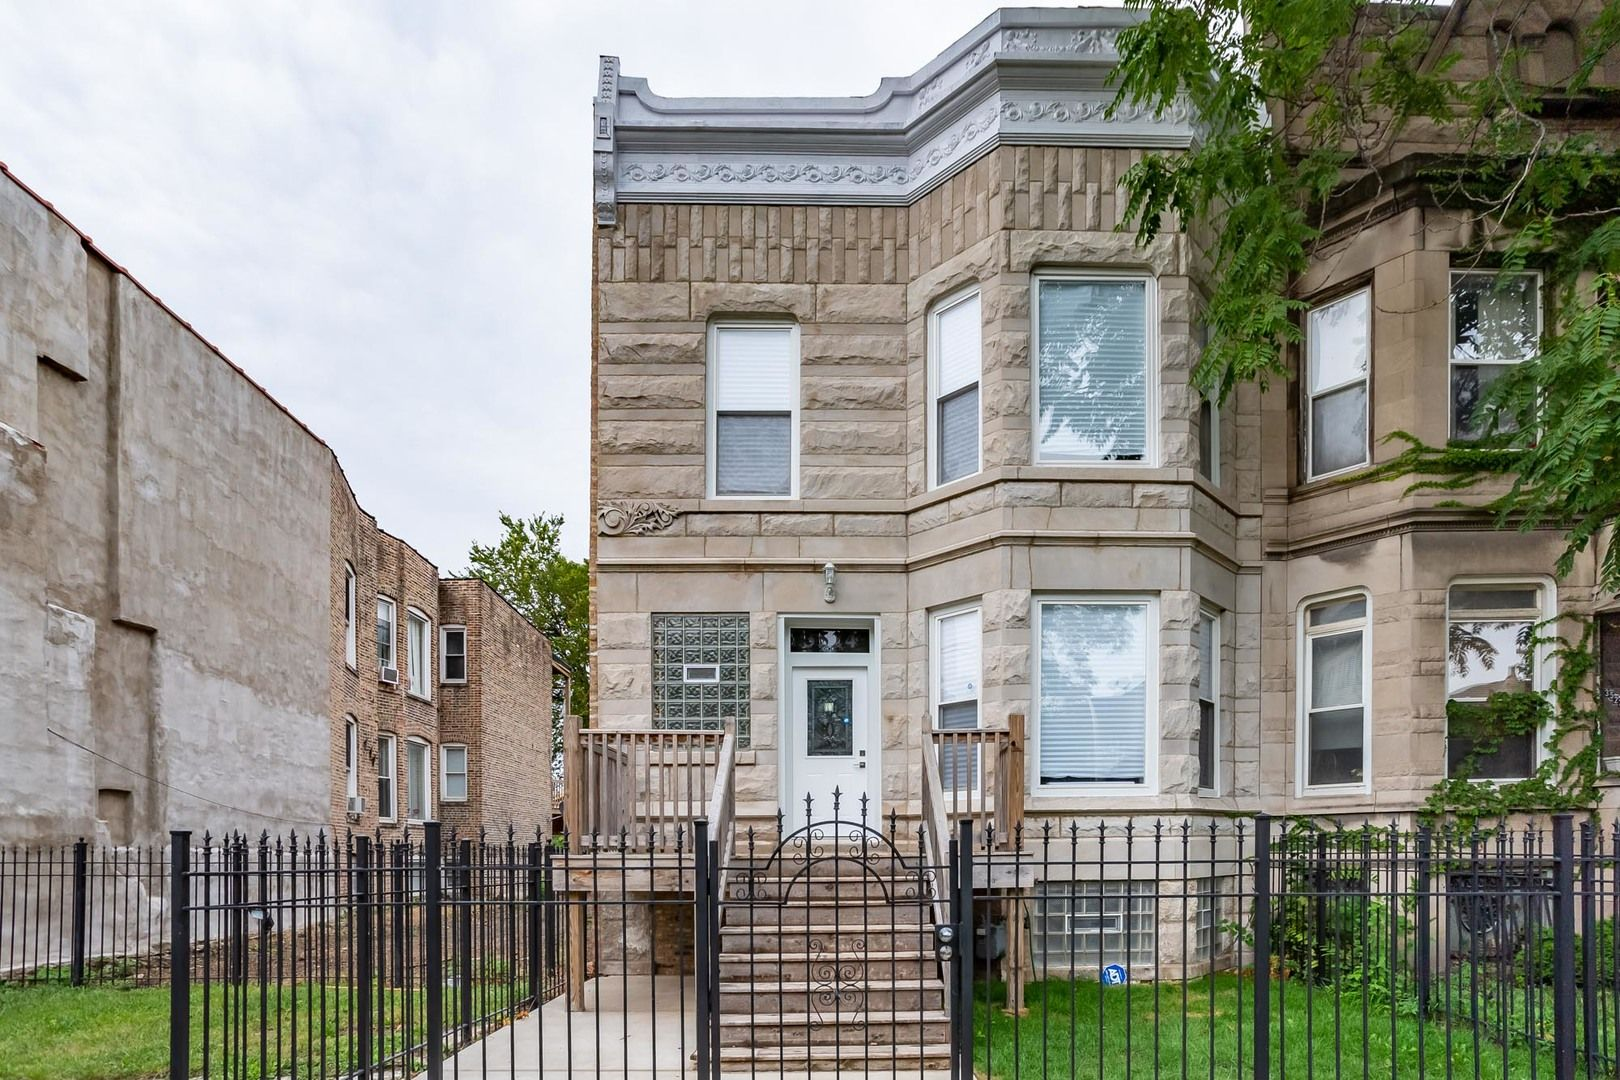 Main Photo: 3524 W Monroe Street in Chicago: CHI - East Garfield Park Residential for sale ()  : MLS®# 10857936